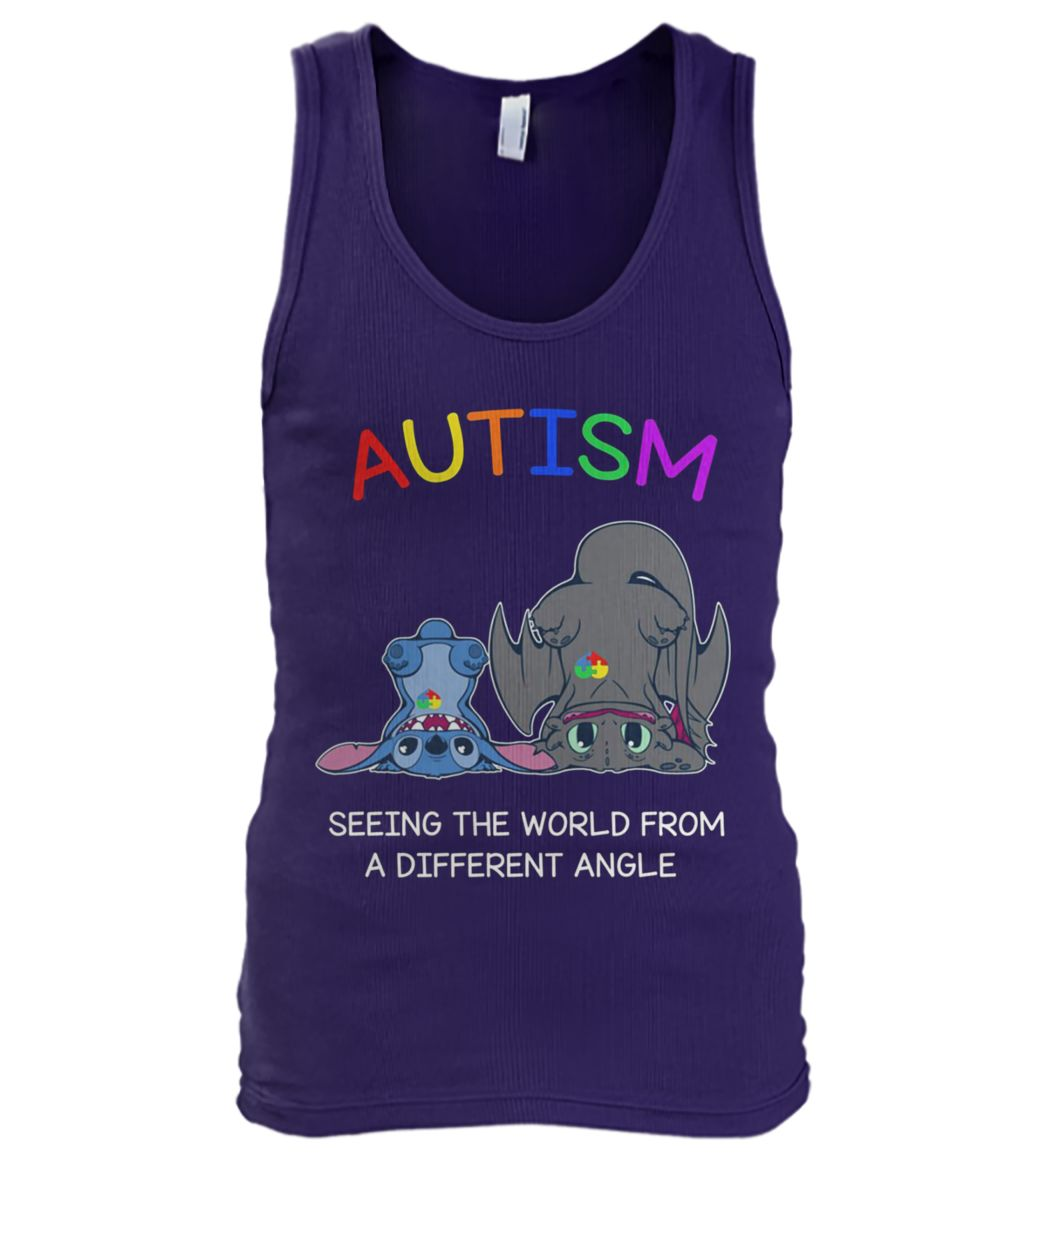 Stitch and toothless autism seeing the world from a different angle men's tank top